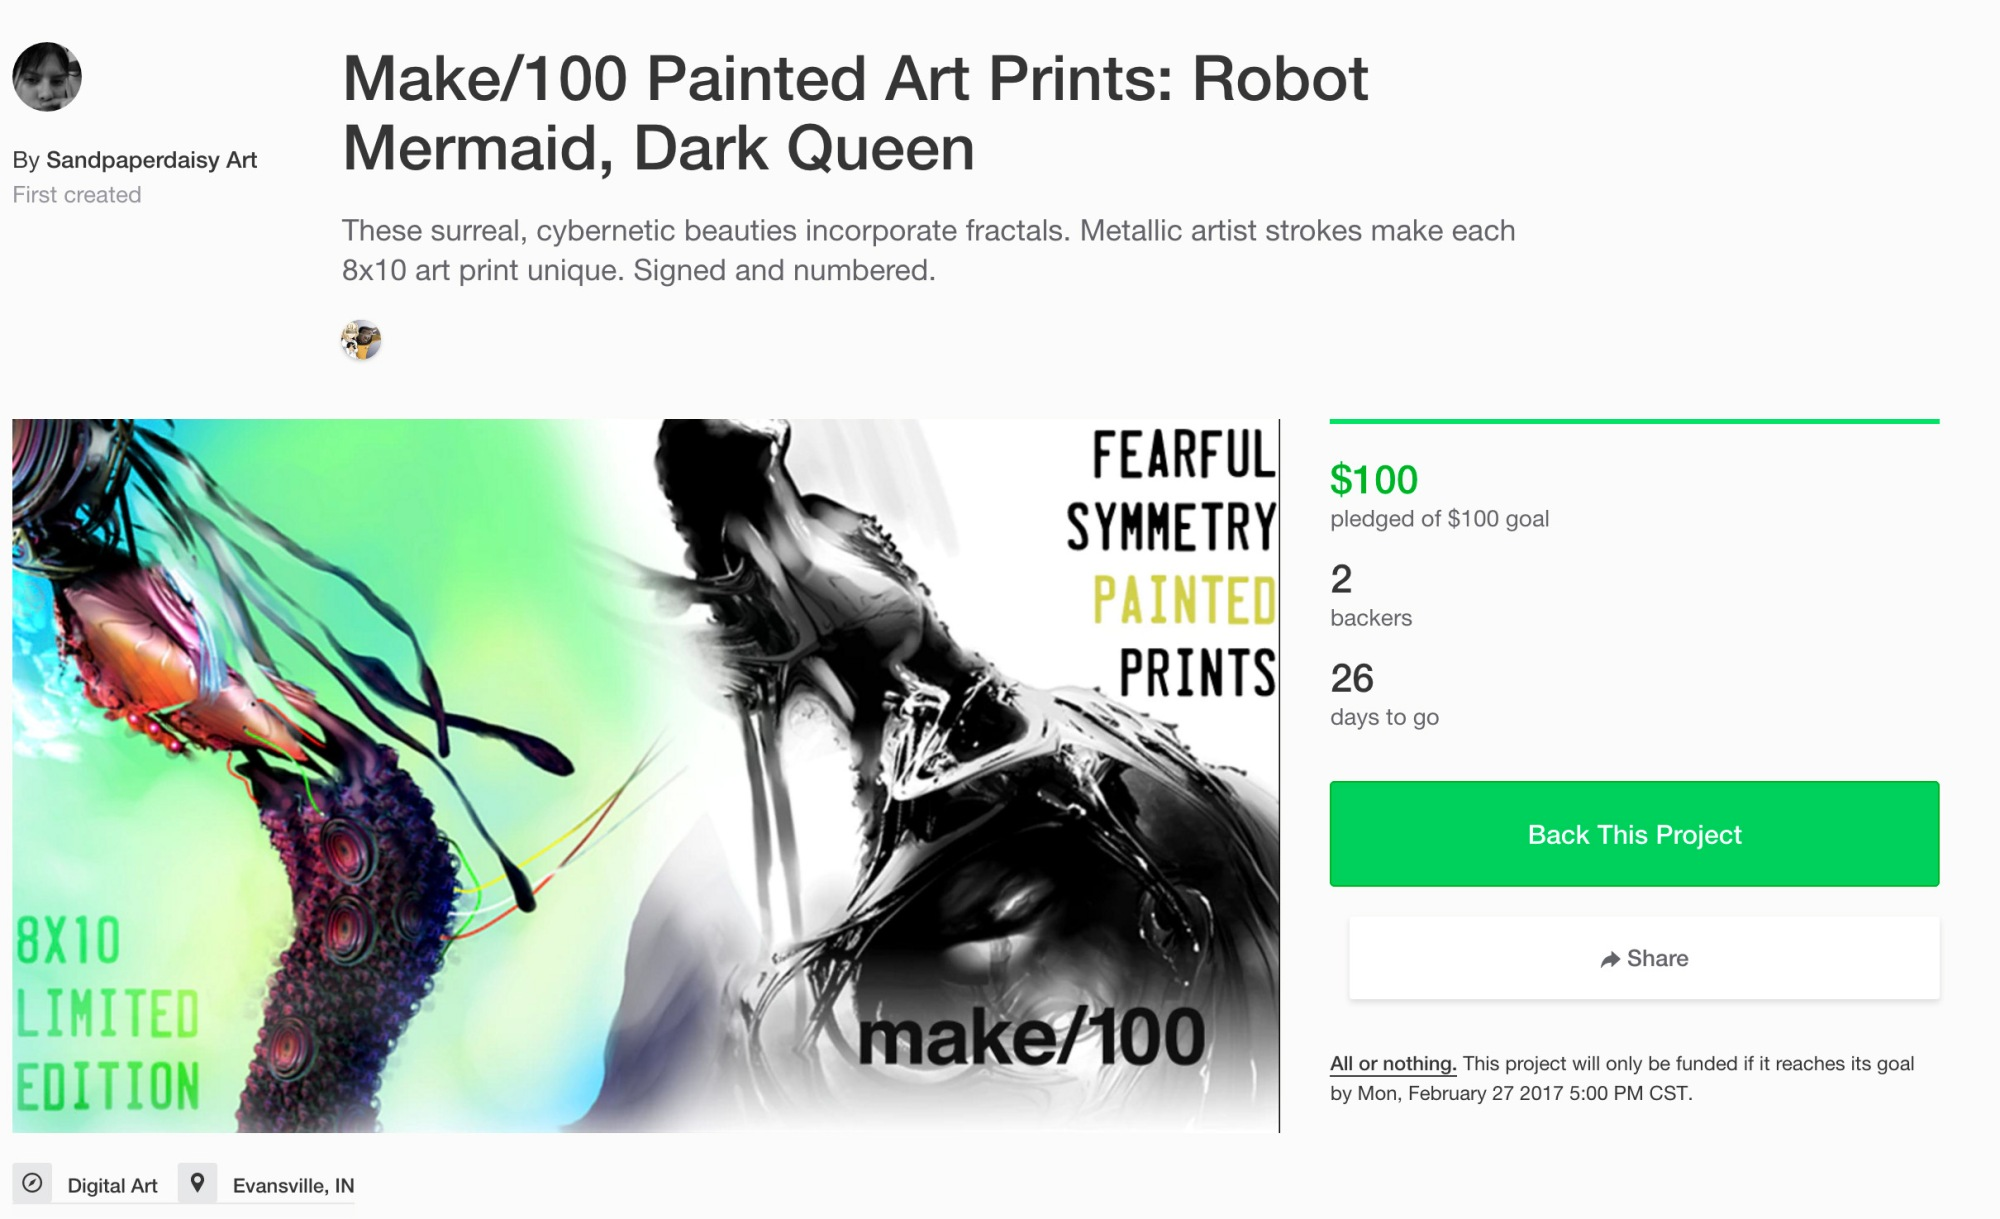 robot mermaid dark queen kickstarter archival paint print sale cyborg fractal surreal women legend fantasy